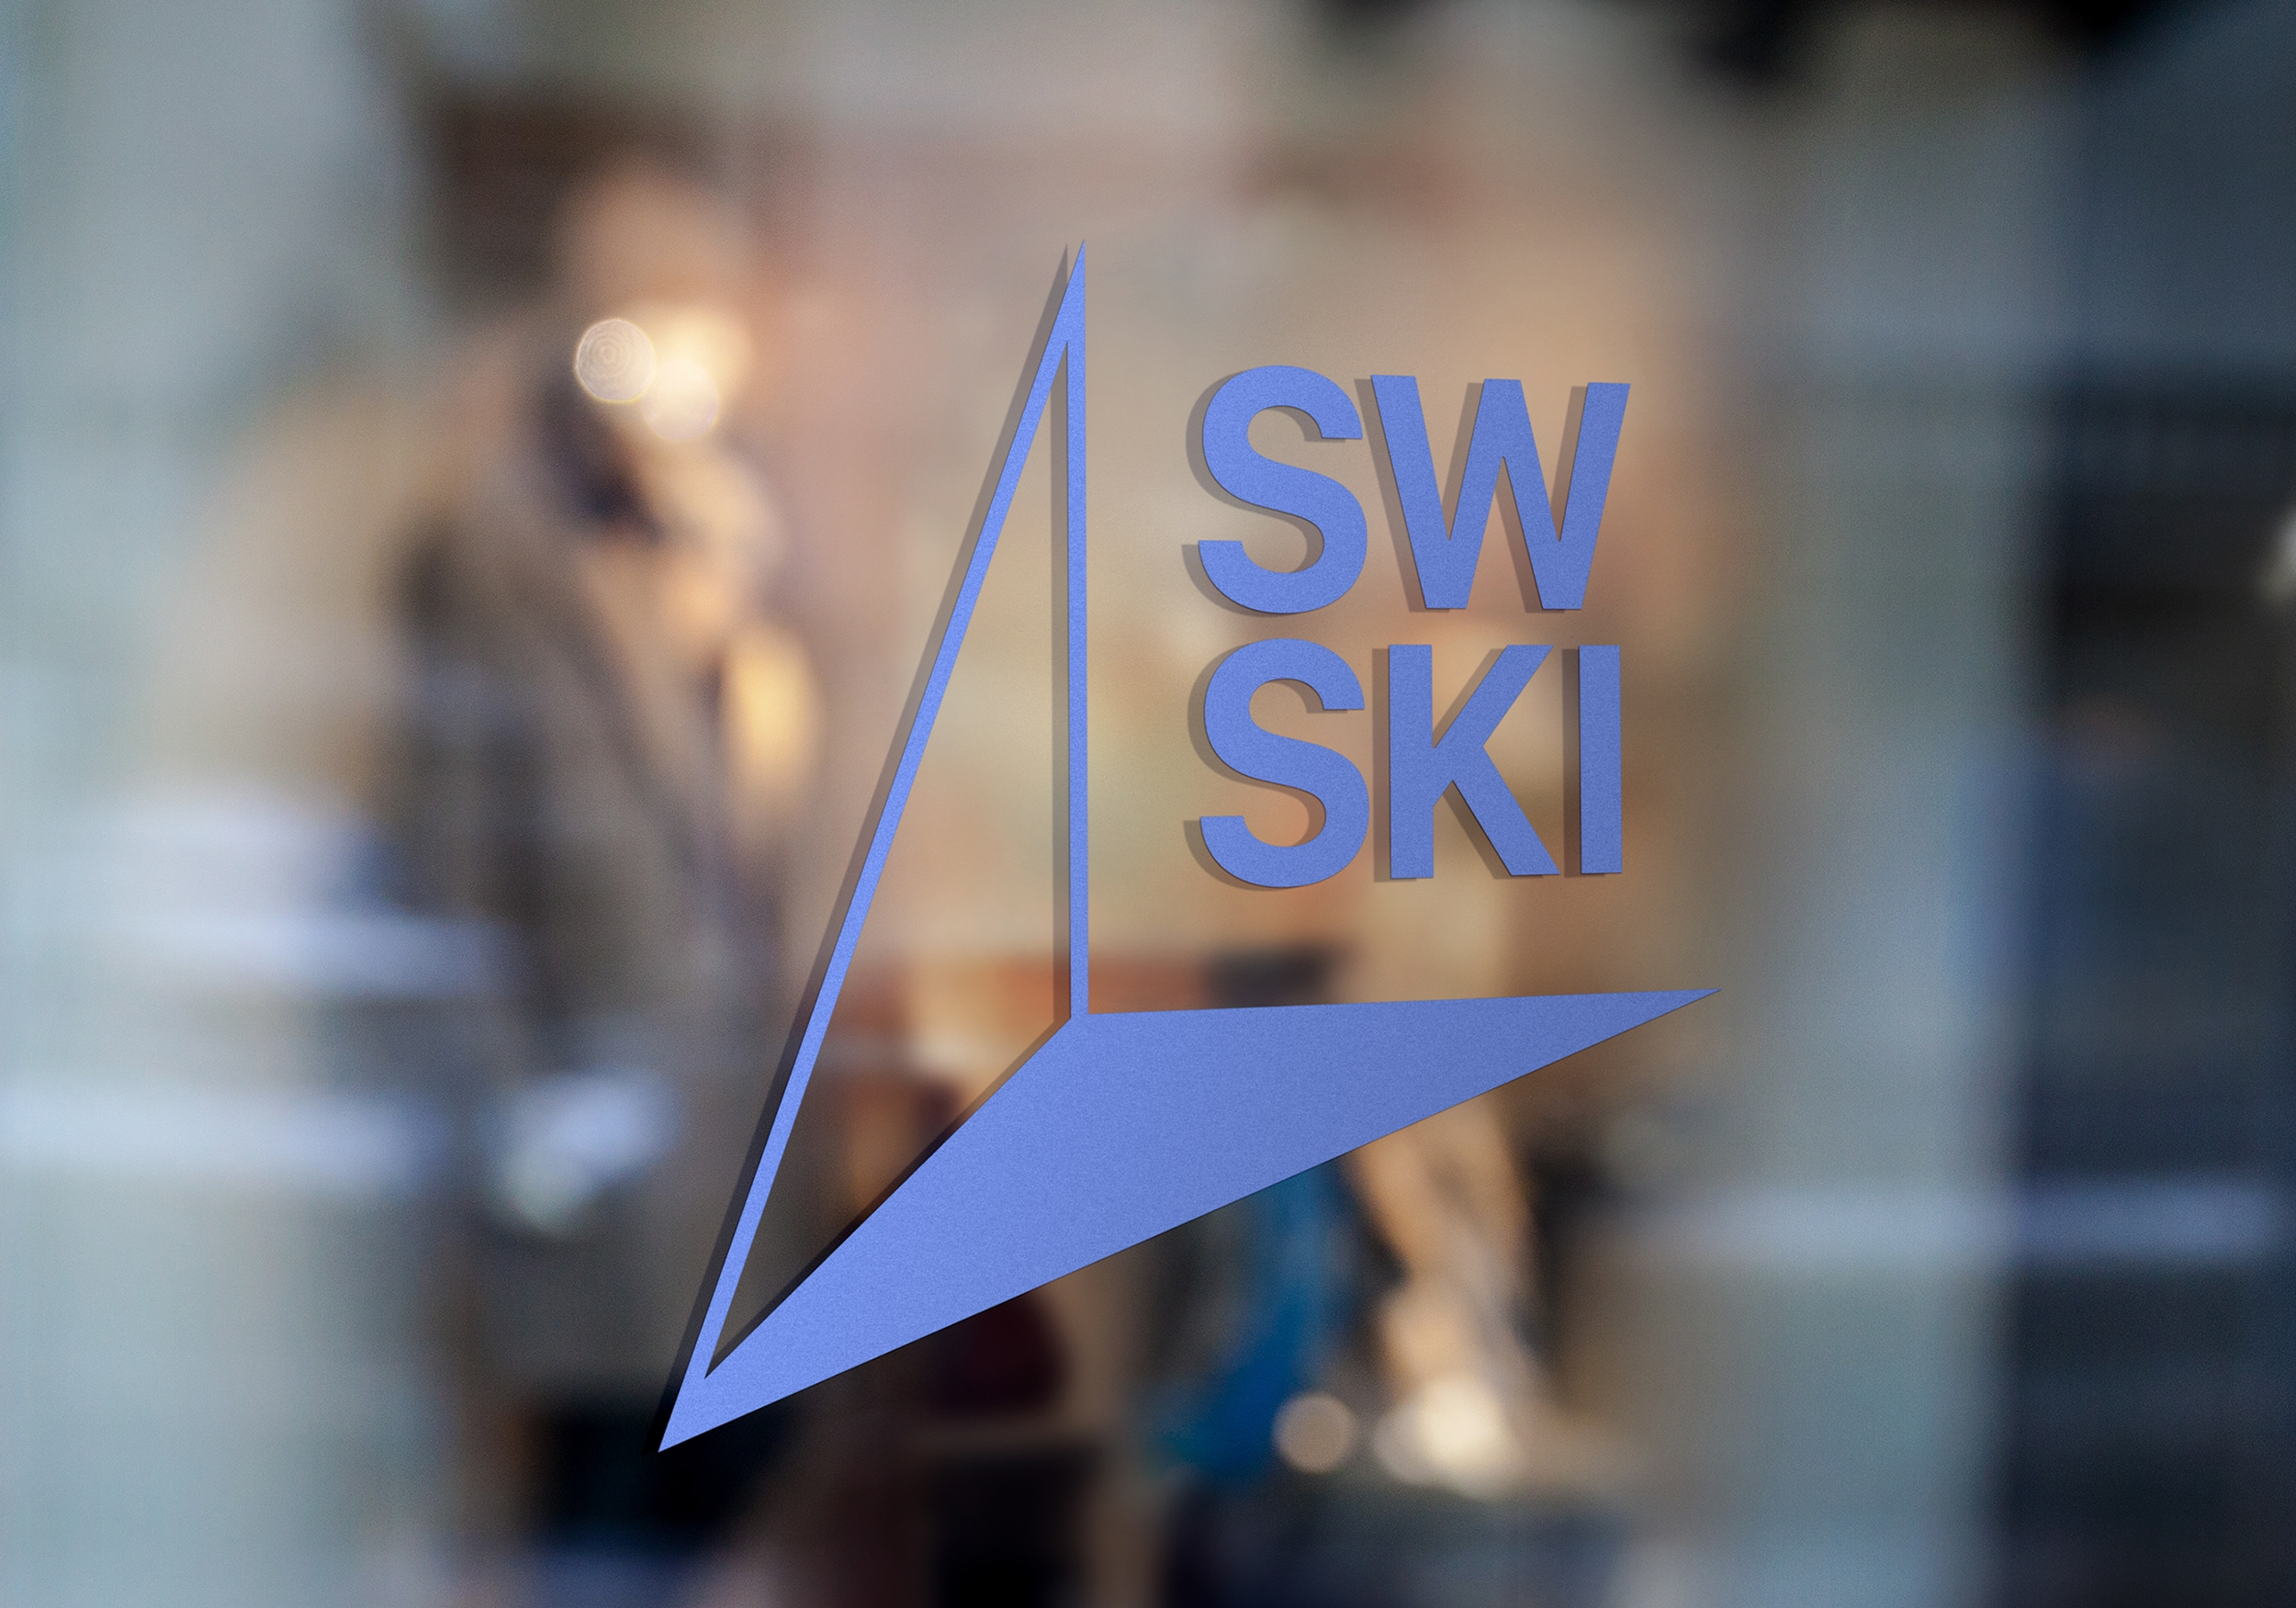 ski shop window logo